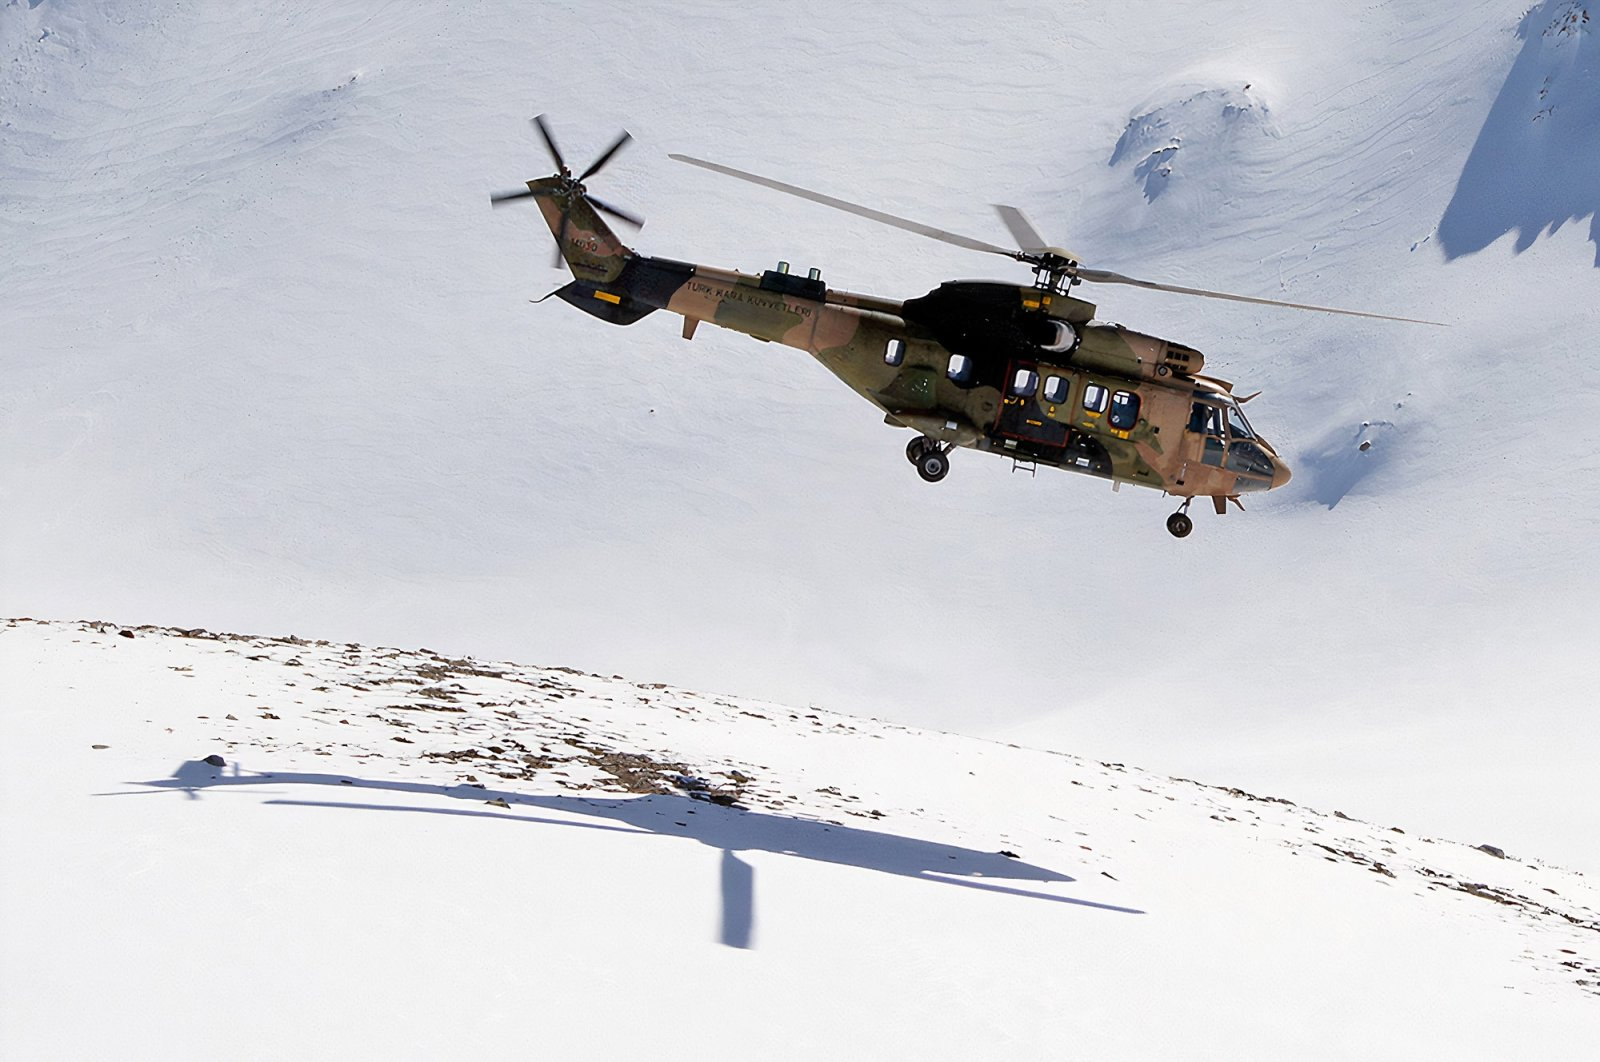 An undated photo of the Cougar helicopter, the same model that crashed in Turkey's Bitlis on March 4, flying through a mountainous area. (Photo courtesy of Turkish Armed Forces)